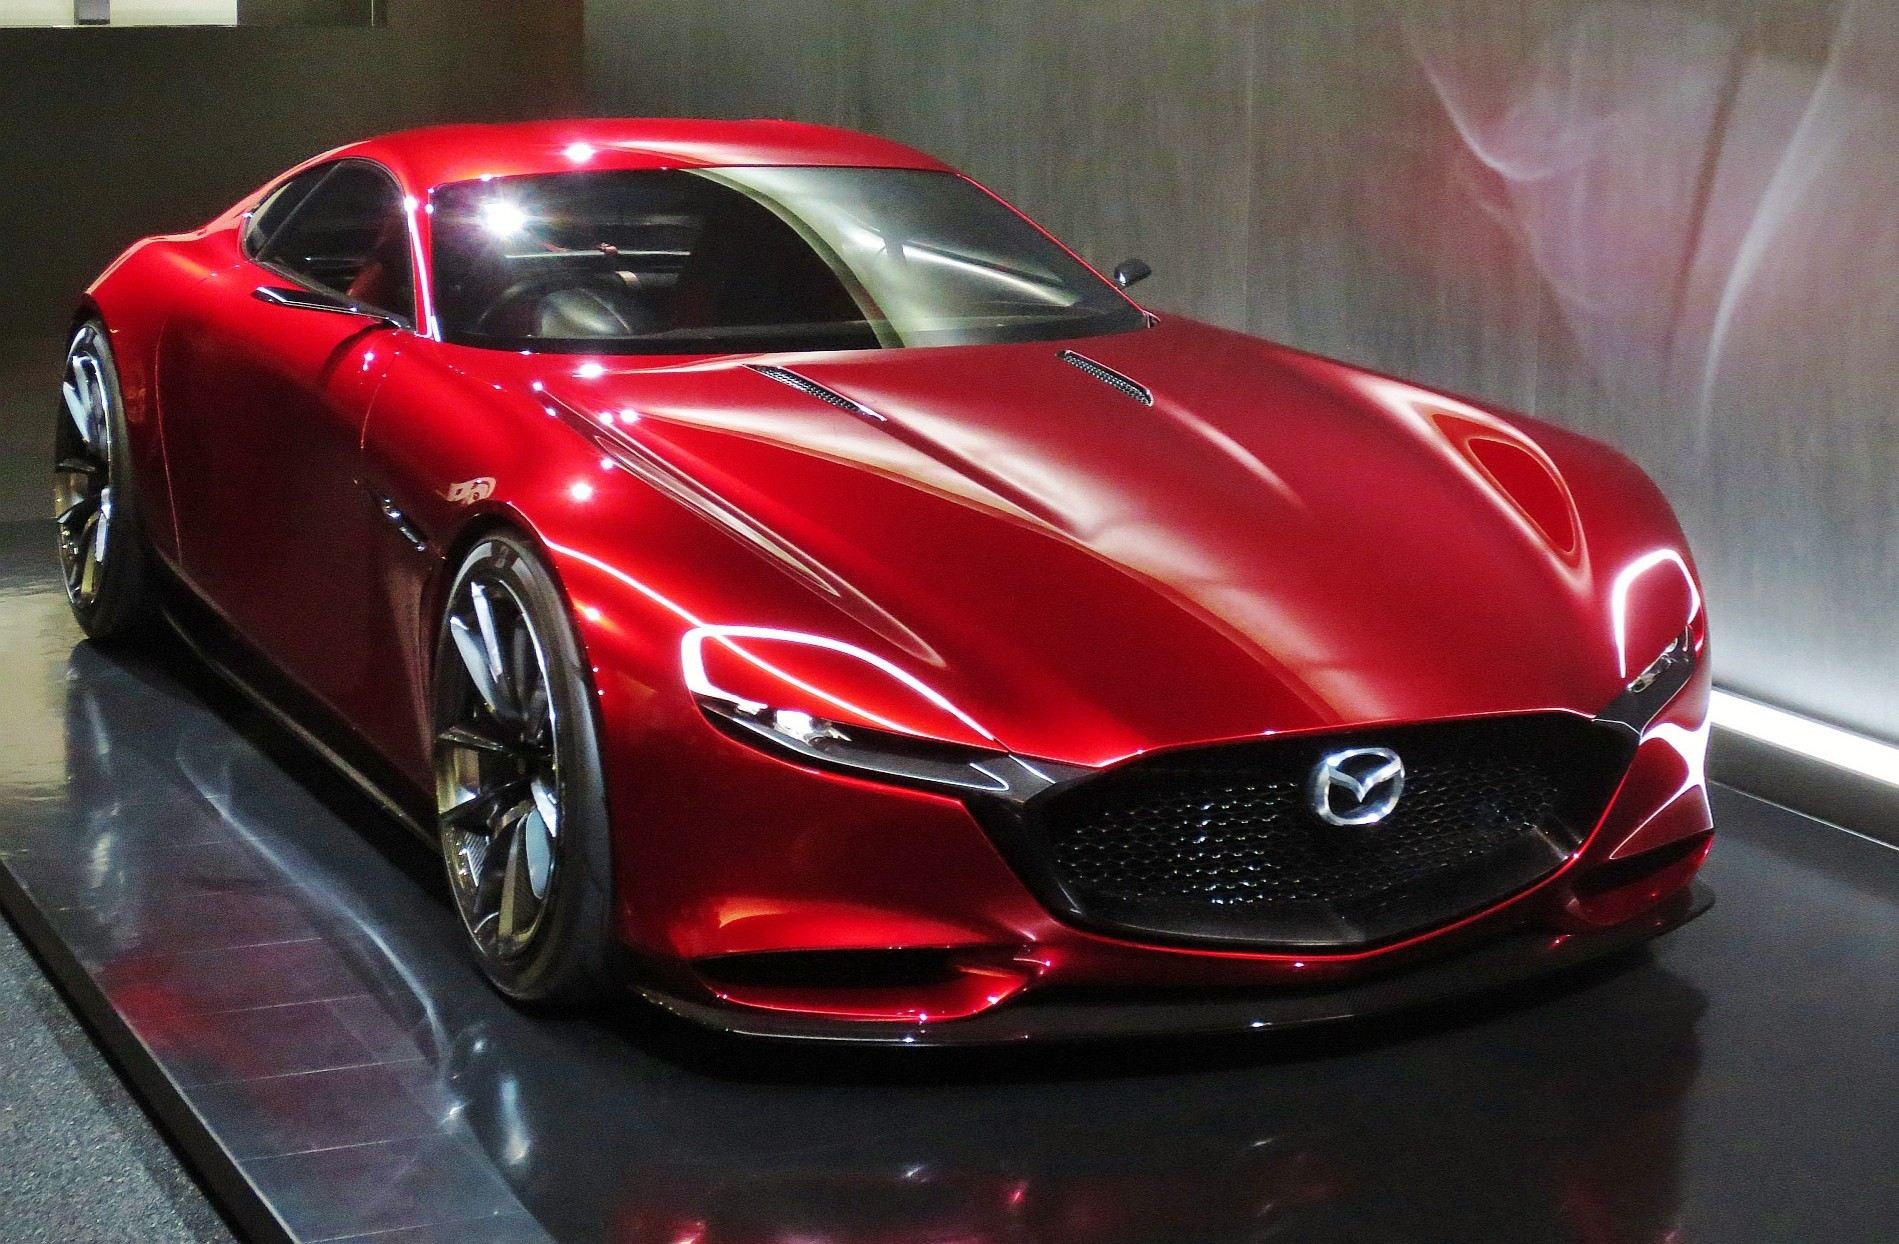 Mazda_RX-Vision_in_Automobile_Council_2016 - Edited